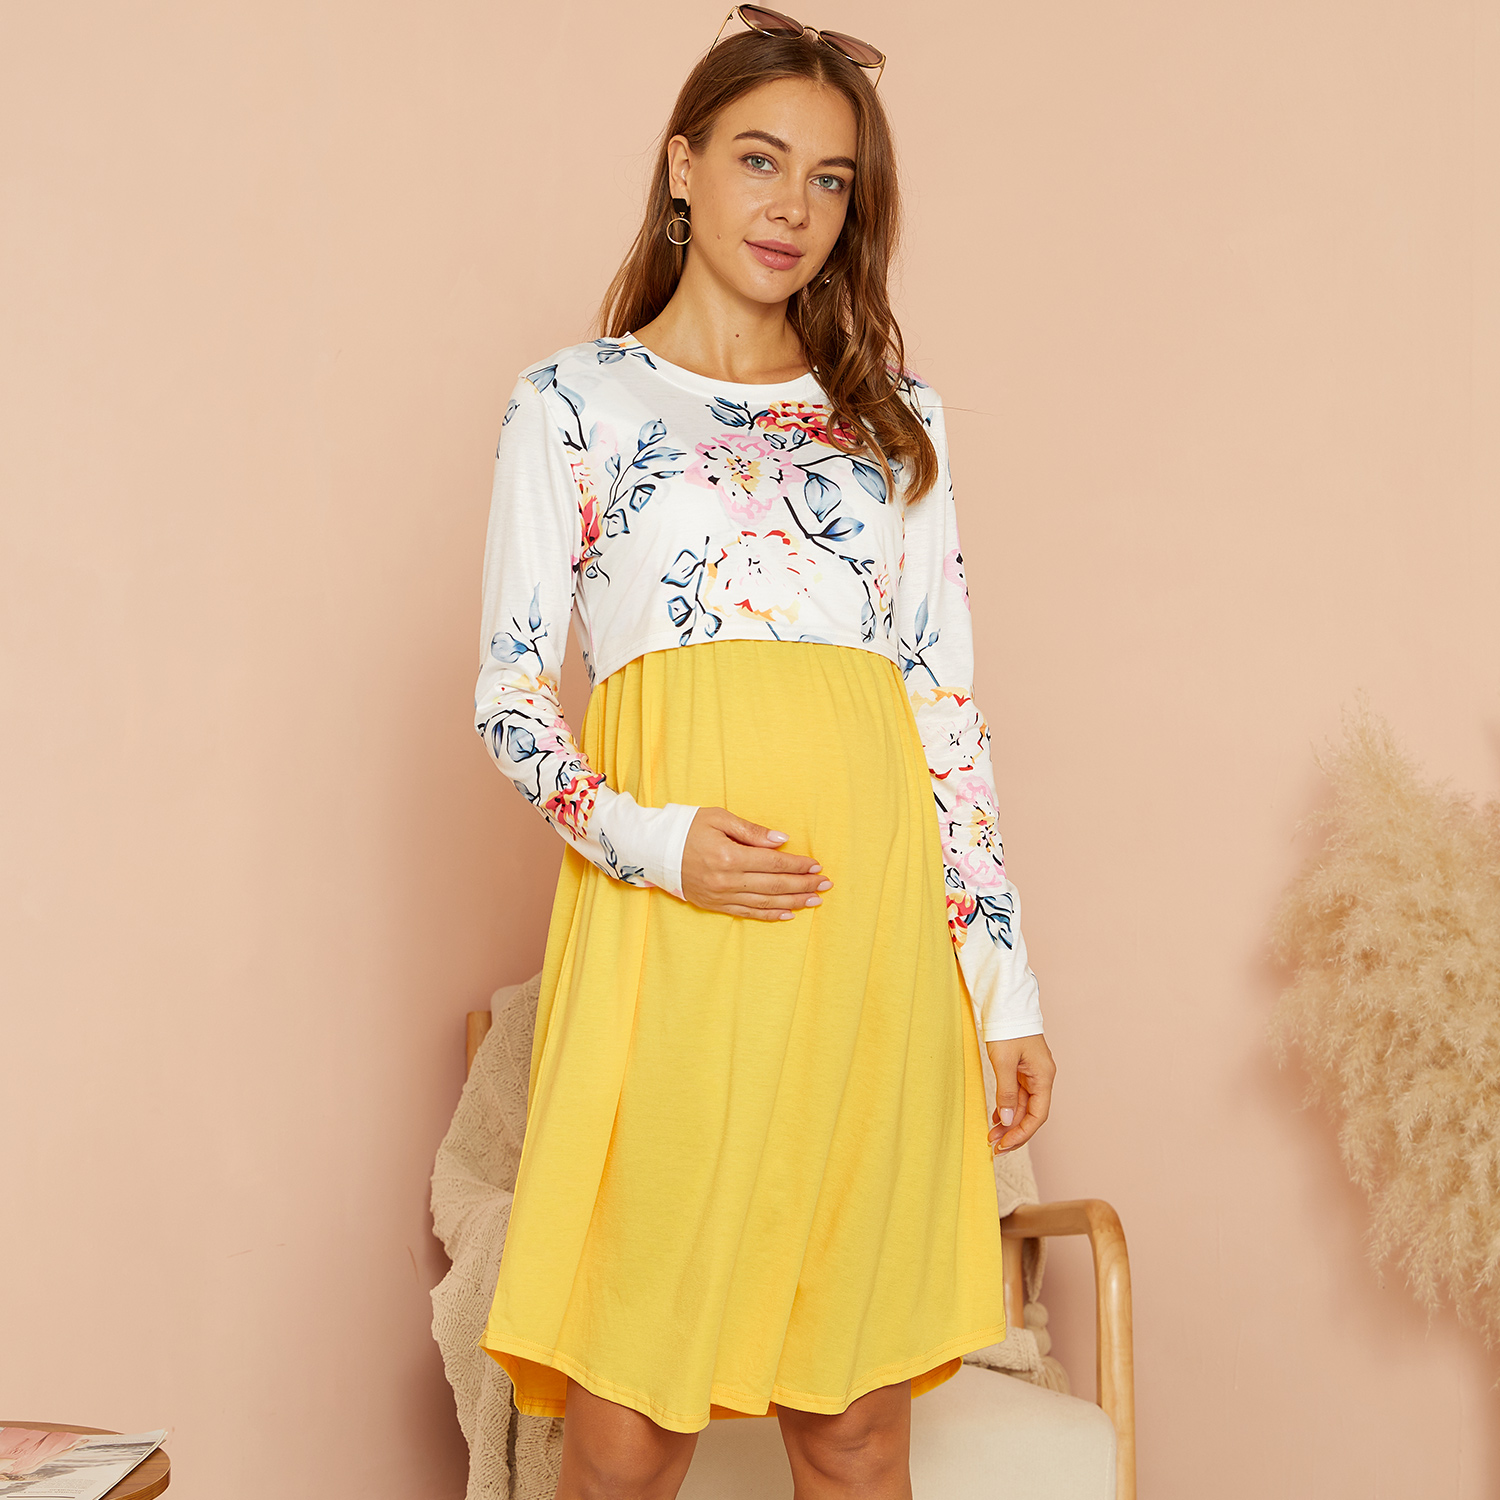 PatPat / Maternity Round collar Floral Color block Yellow Knee length Parachute skirt Long-sleeve Nursing Dress